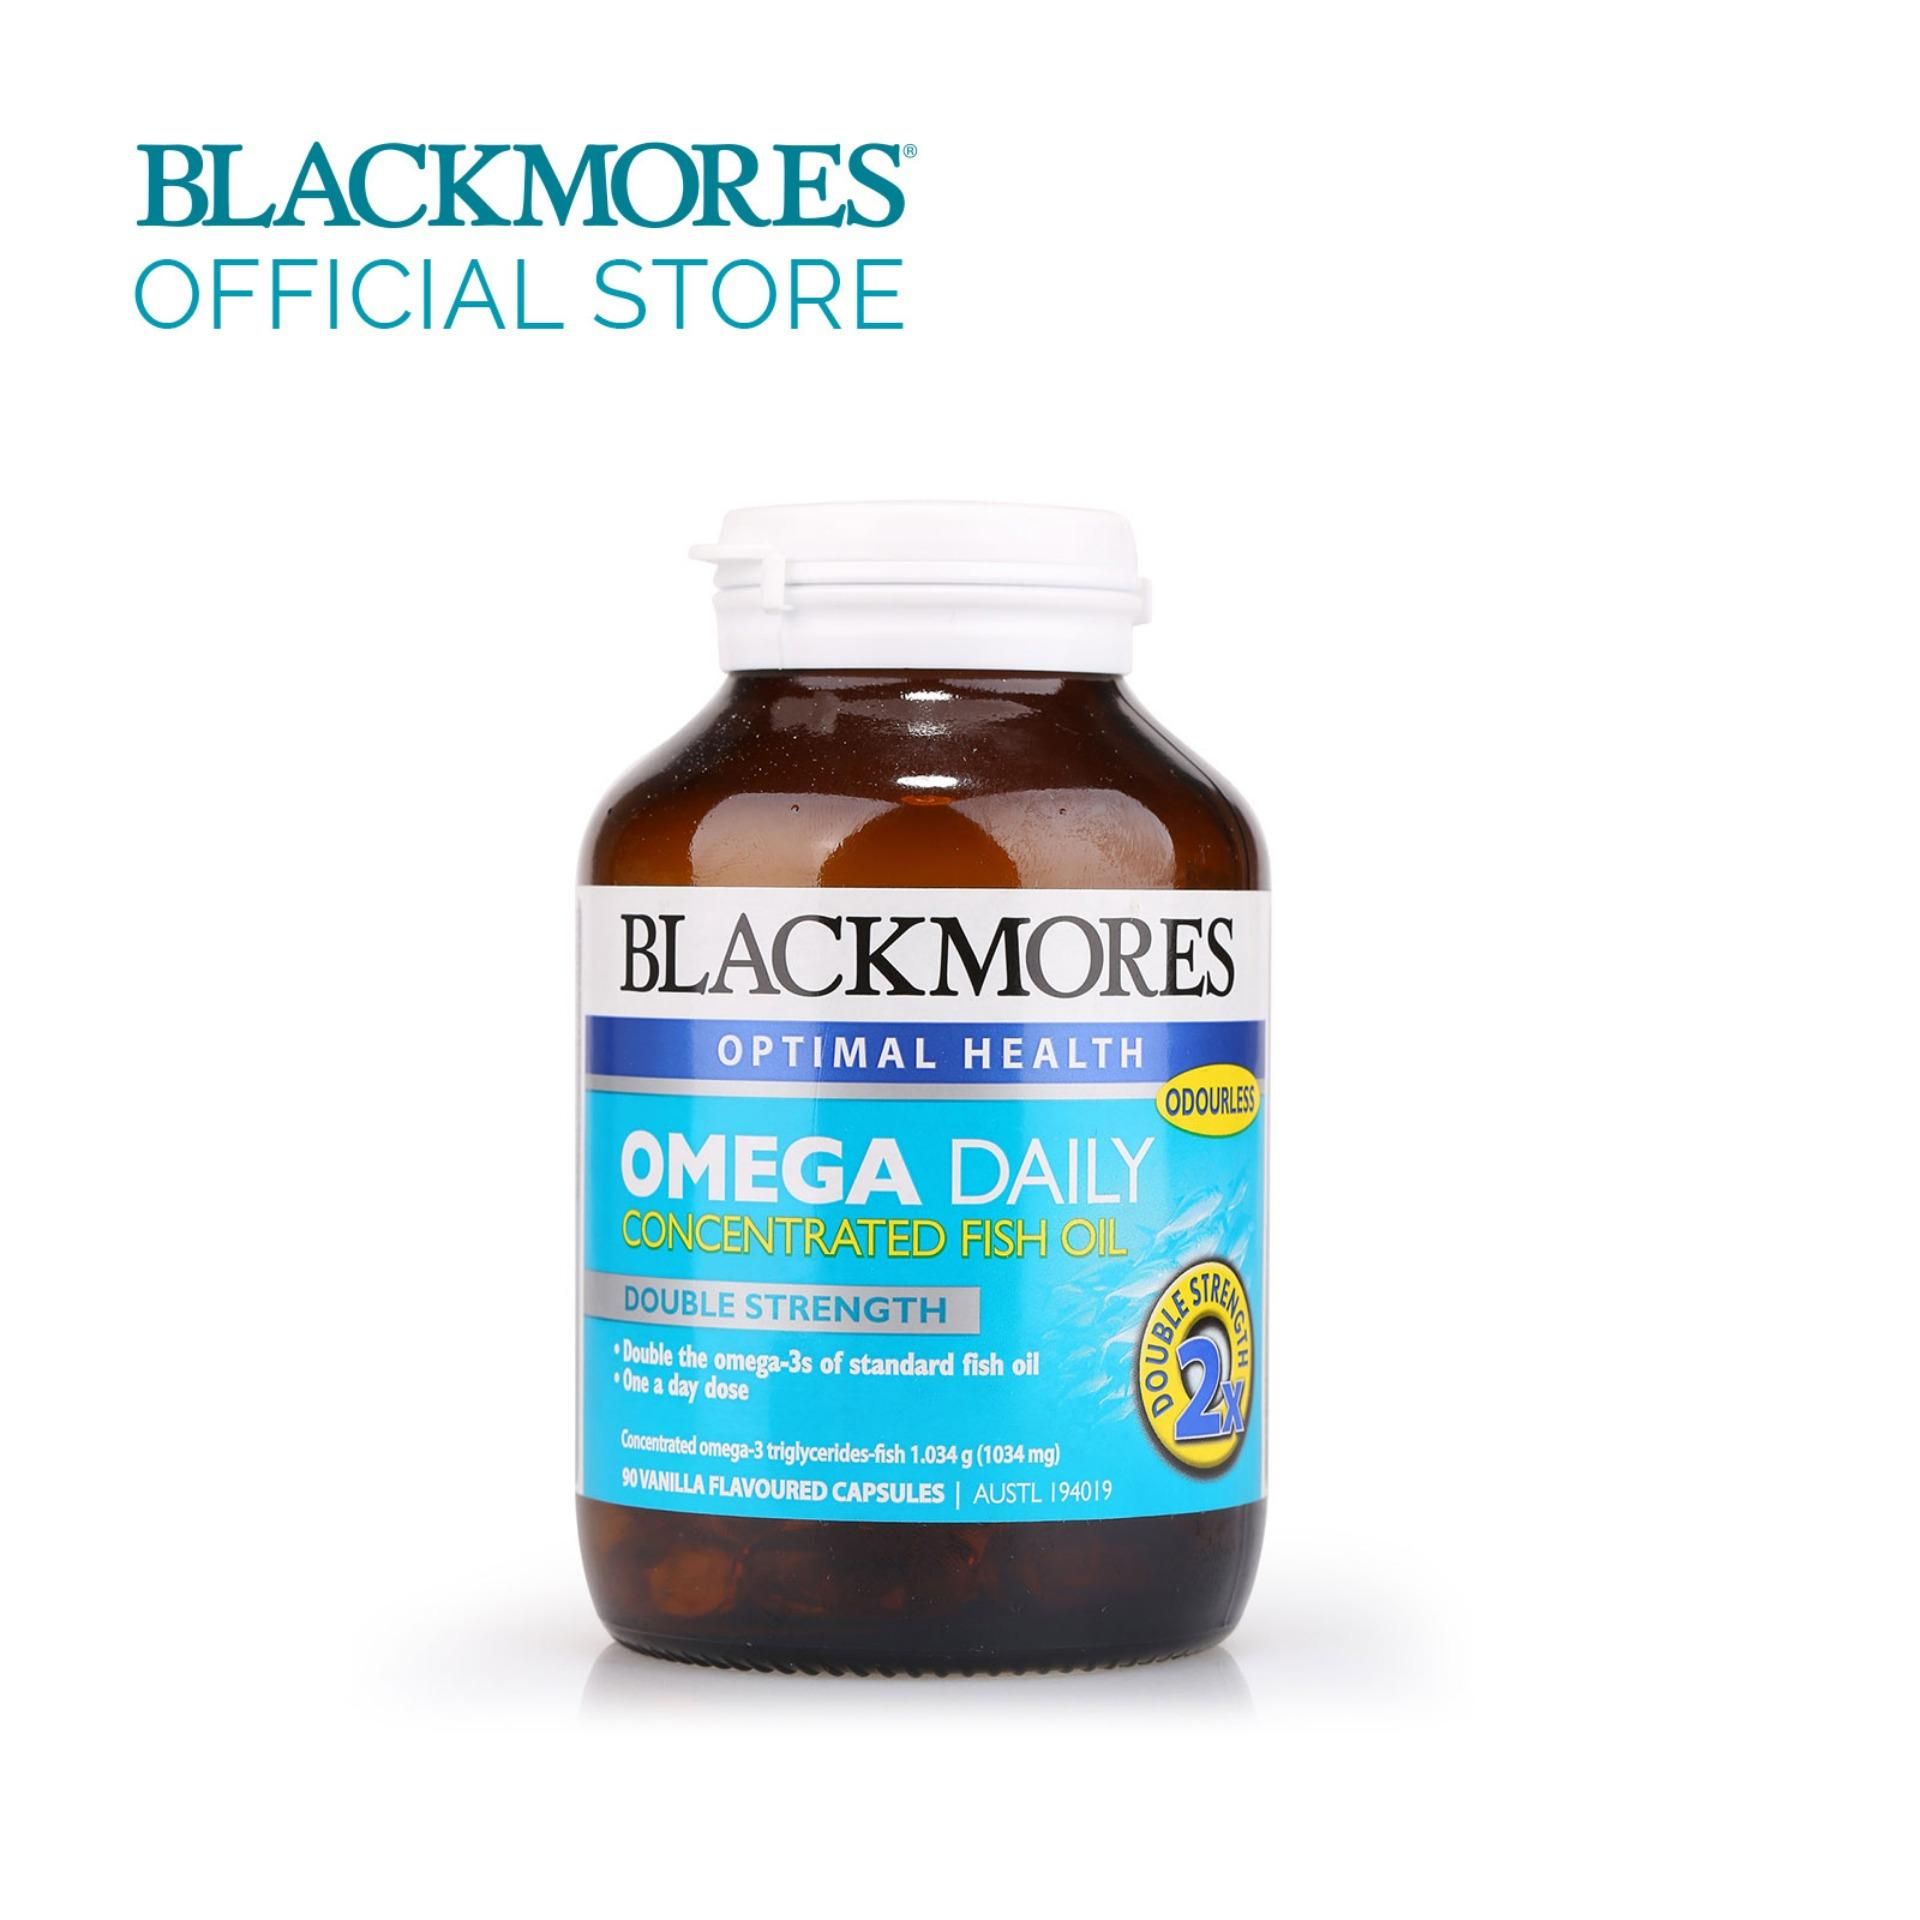 Blackmores Omega Daily 90caps By Blackmores Official Store.